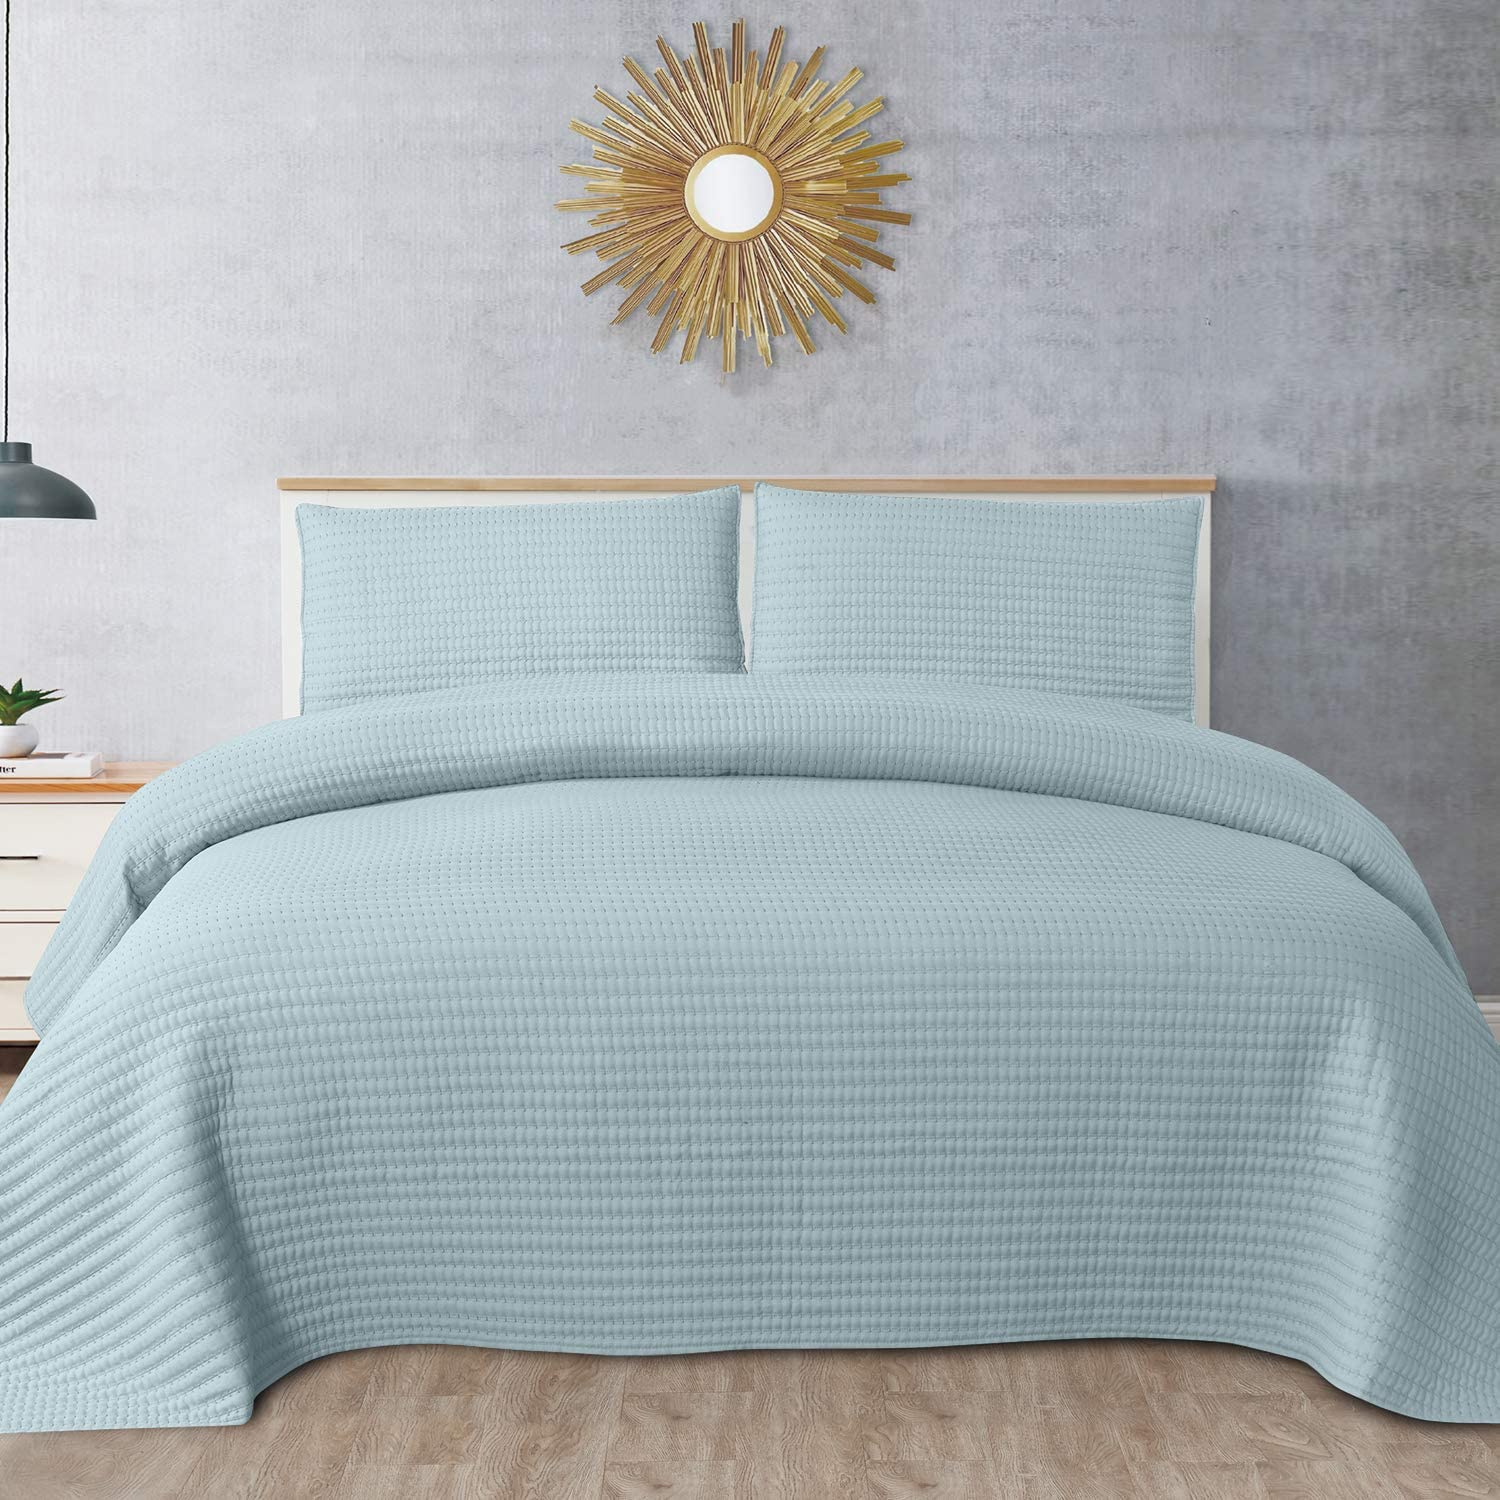 Sweet Home Collection Quilts King Size 3 Piece Set Vintage Pre Wash Oversized Reversible Pattern Stripe Pick-Stitch with Pillow Shams, Turquoise Kate